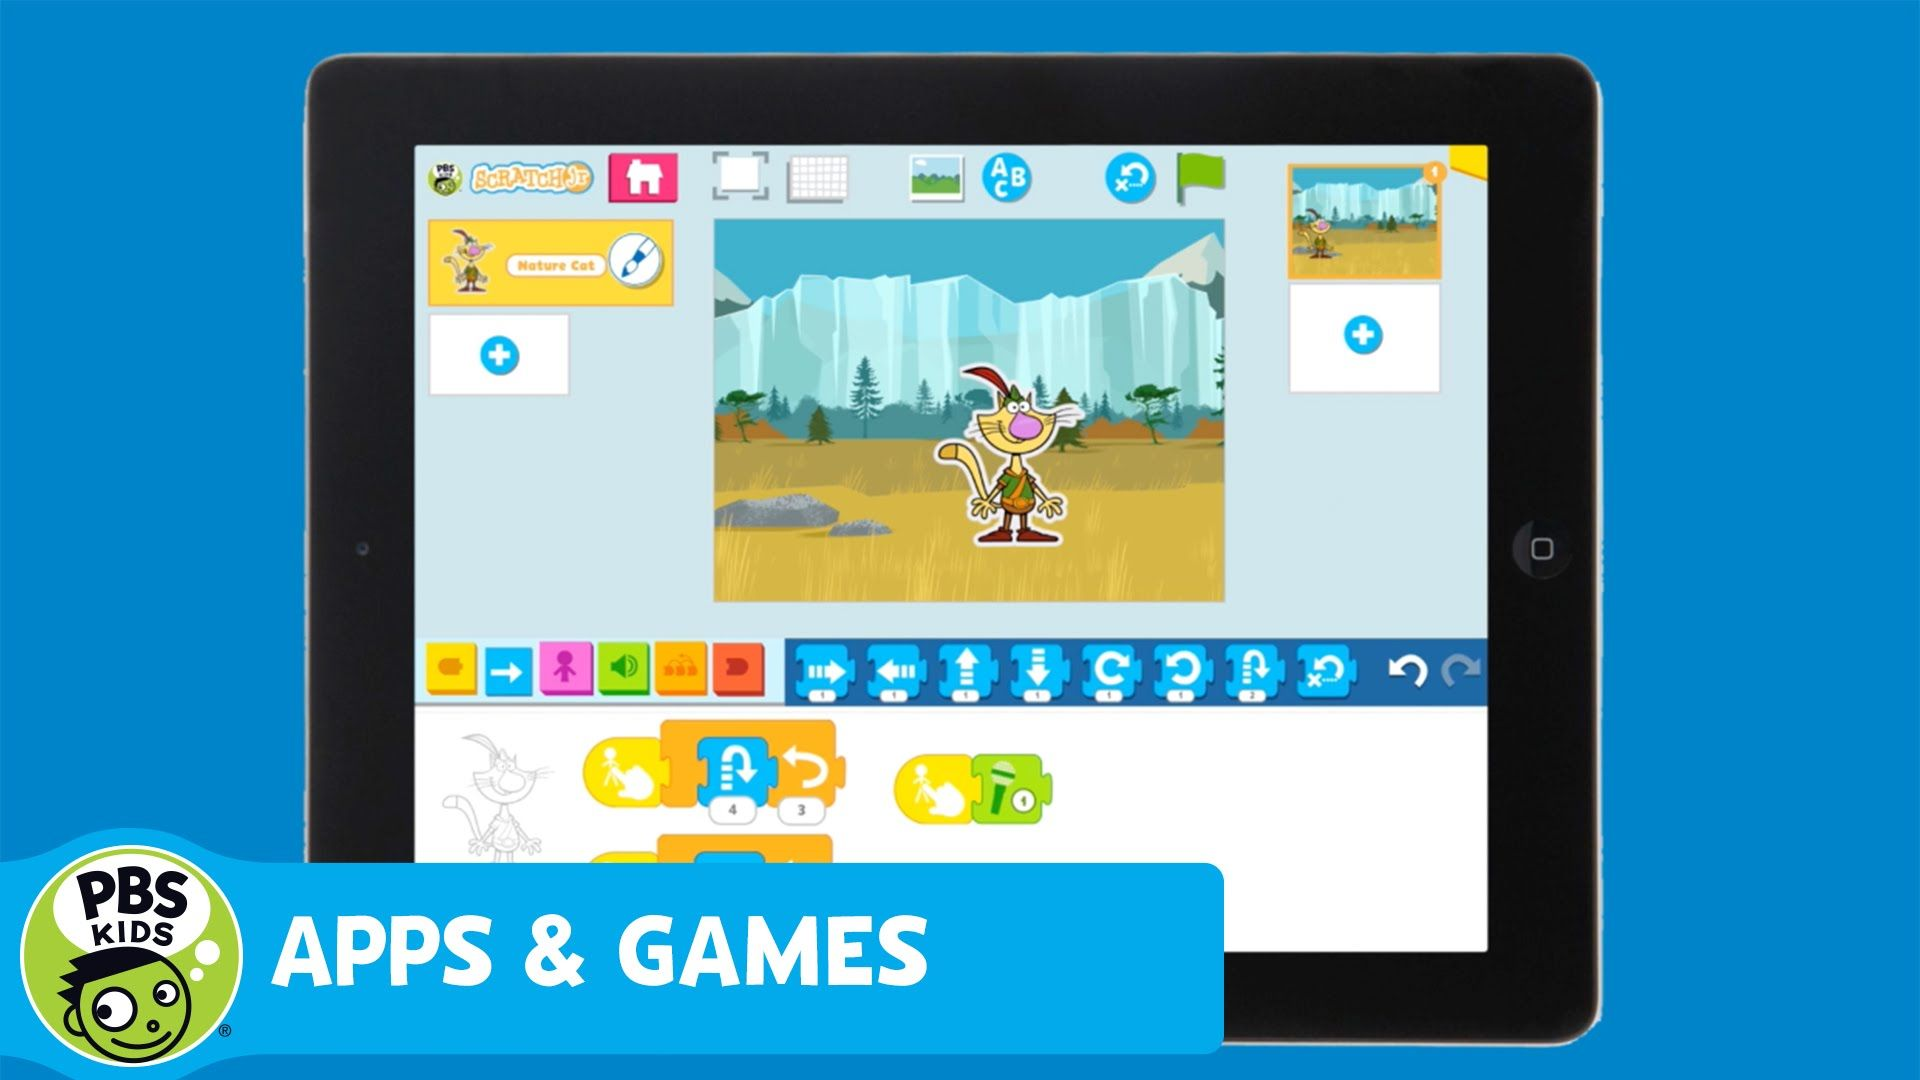 APPS & GAMES PBS KIDS ScratchJr YouTube Pbs kids